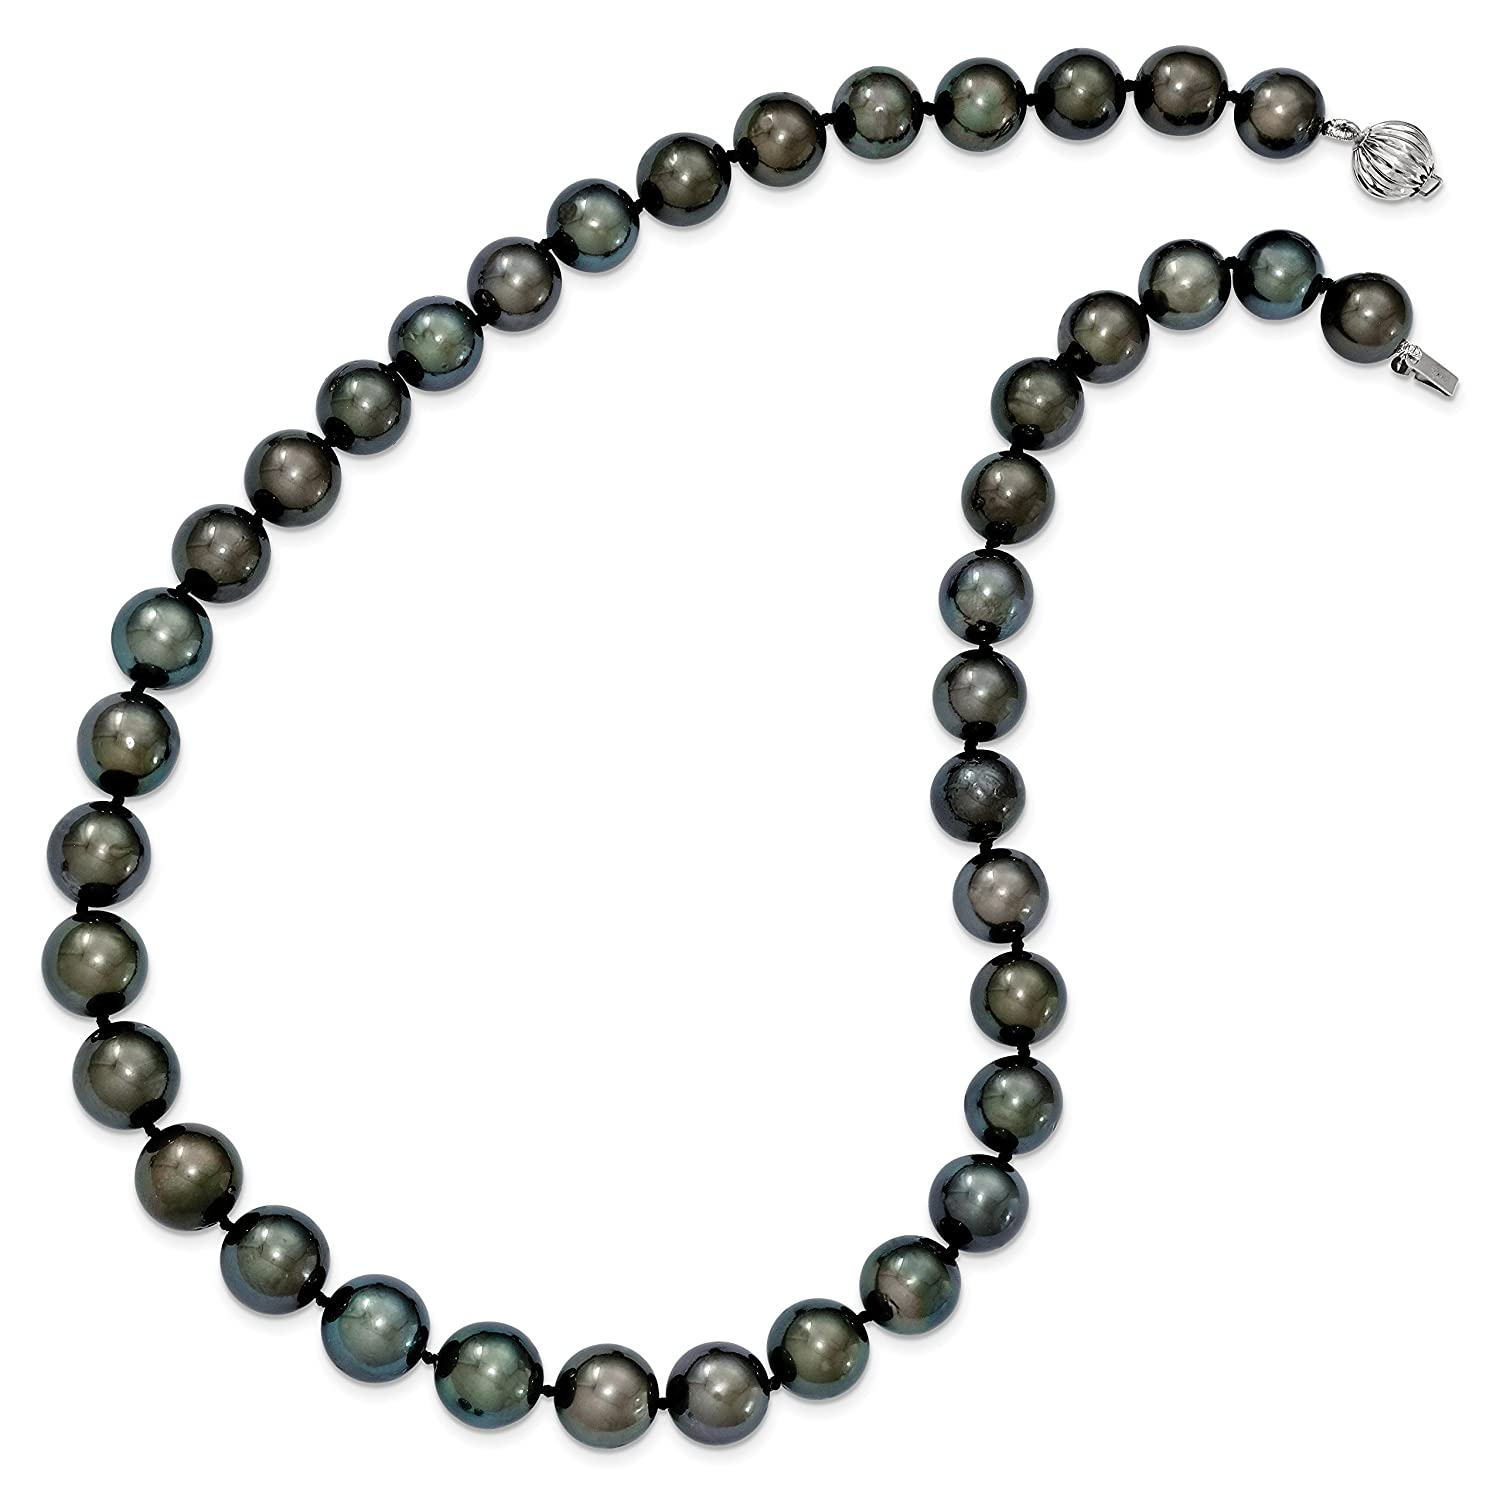 14k White Gold 19in 10-12mm Off-round Black Tahitian Pearl Graduate Necklace